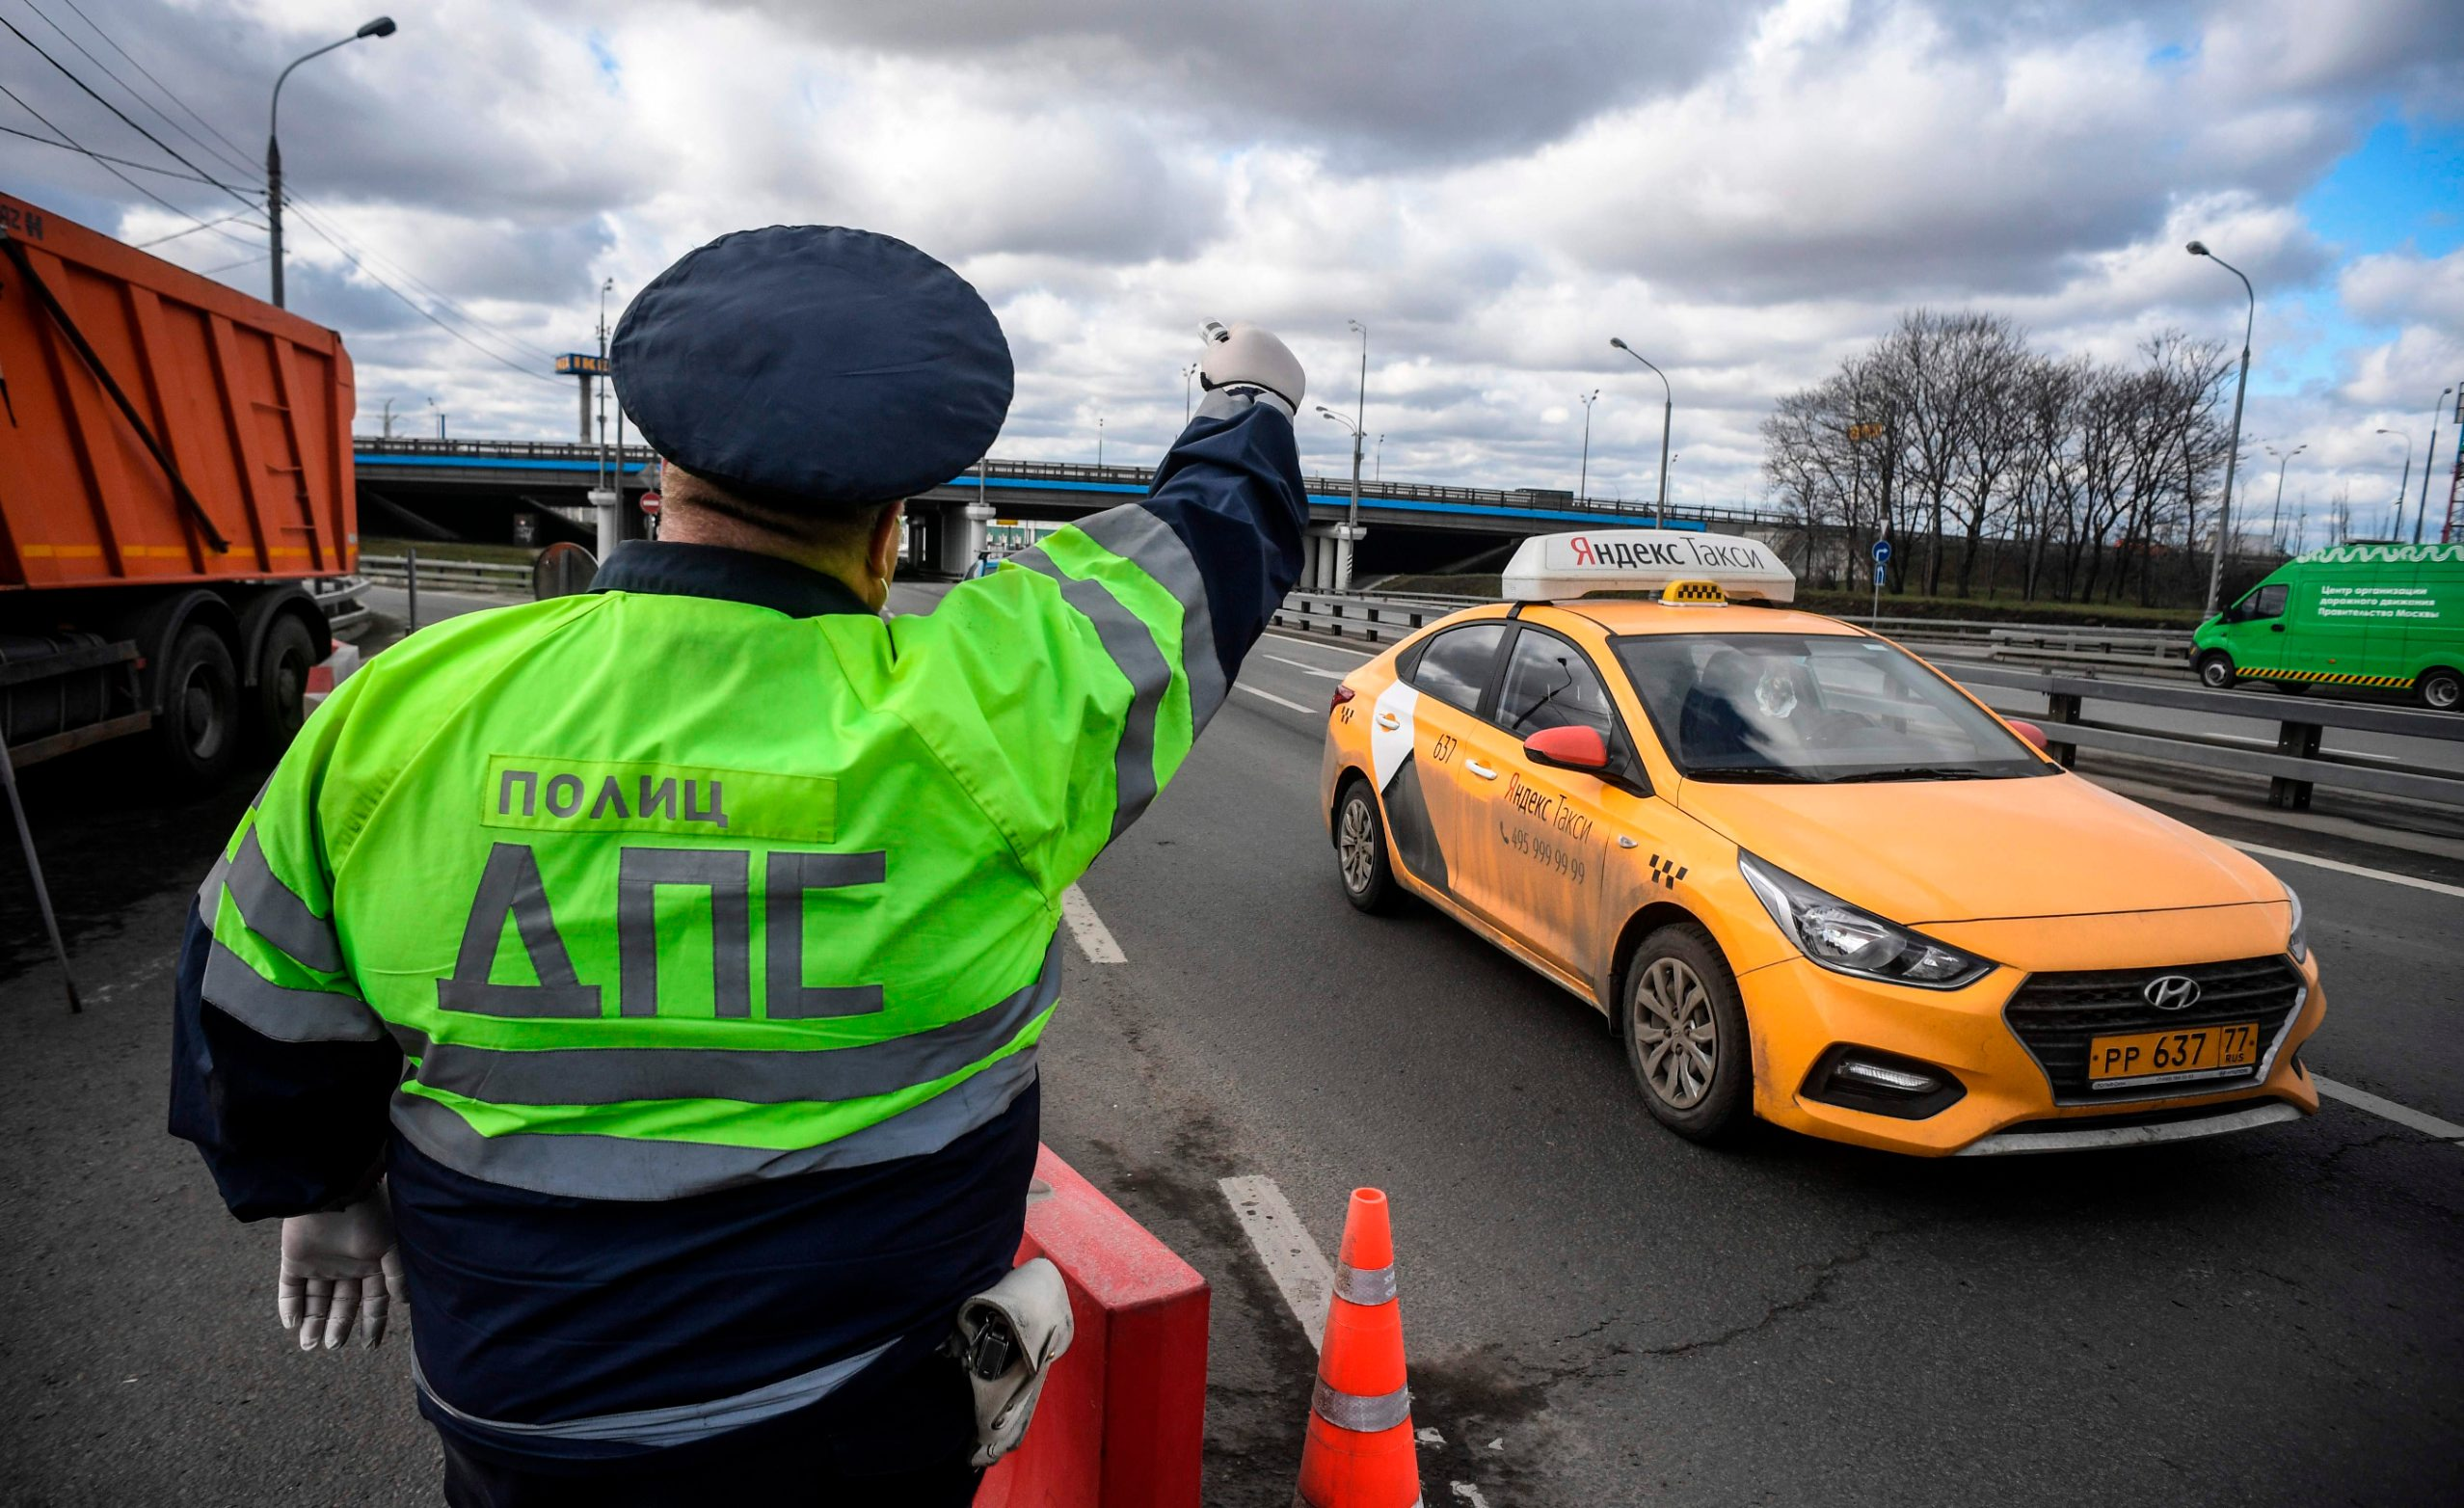 A traffic police officer stops a taxi to check IDs and passes of a driver and a passenger after the city authorities introduced a mandatory permit system for people travelling across the city by car or public transport in a bid to stop the spread of the COVID-19 coronavirus, at a checkpoint on the outskirts of Moscow on April 15, 2020. (Photo by Alexander NEMENOV / AFP)